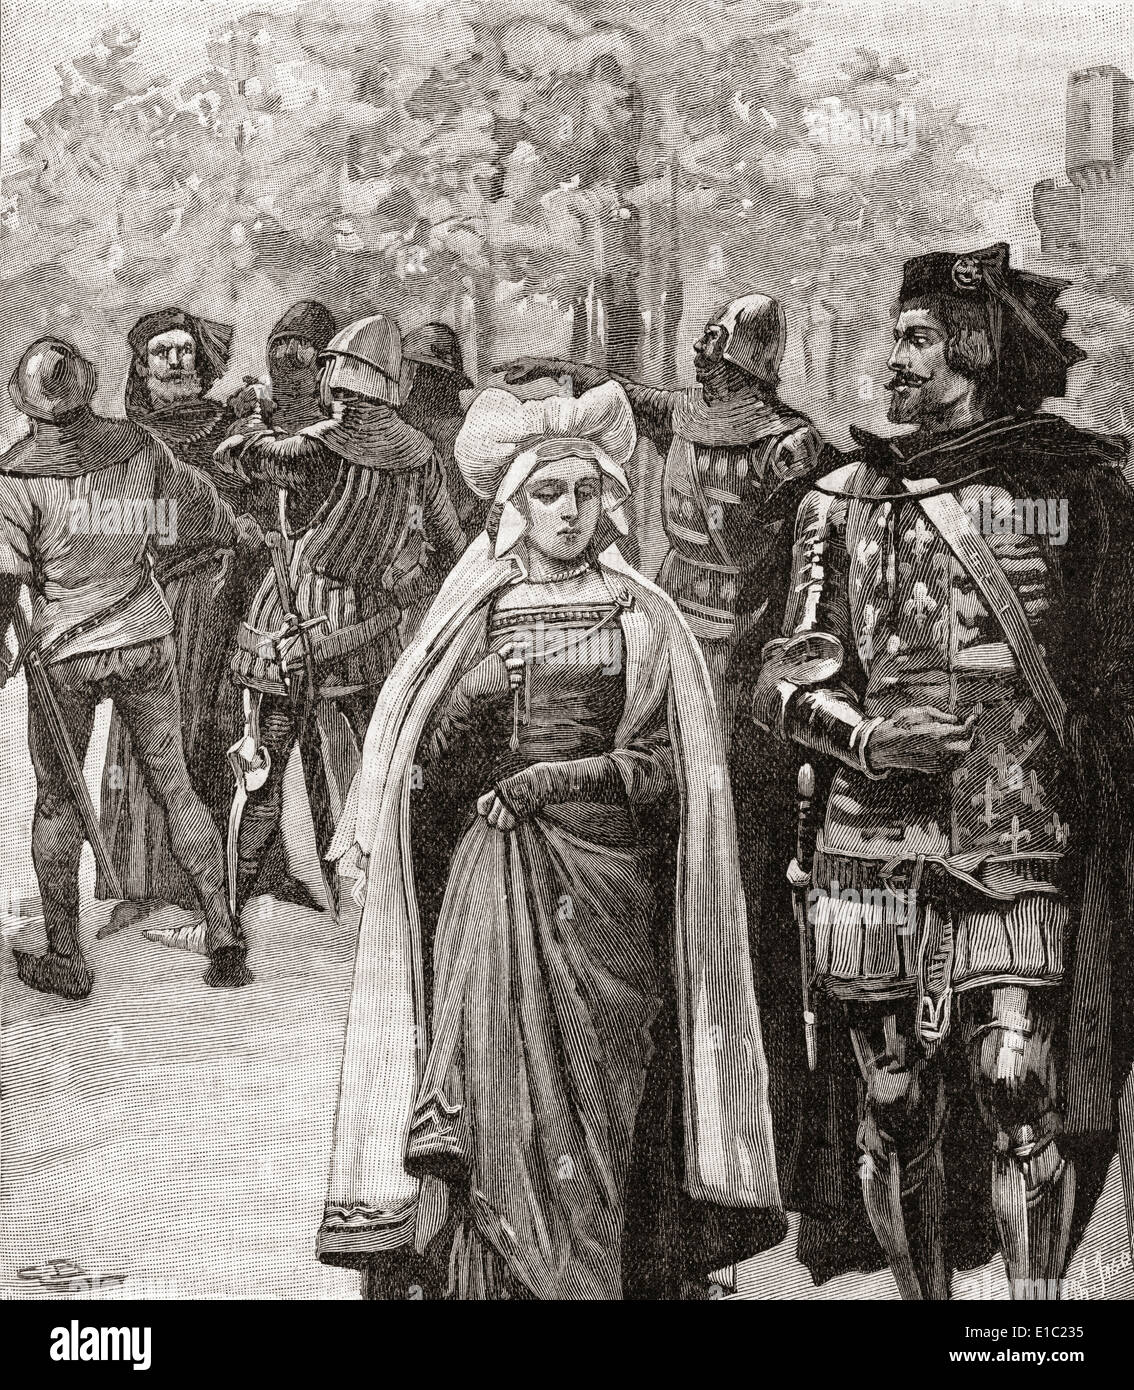 The arrest for treason of Thomas of Woodstock, 1st Duke of Gloucester by Richard II in 1397. Stock Photo